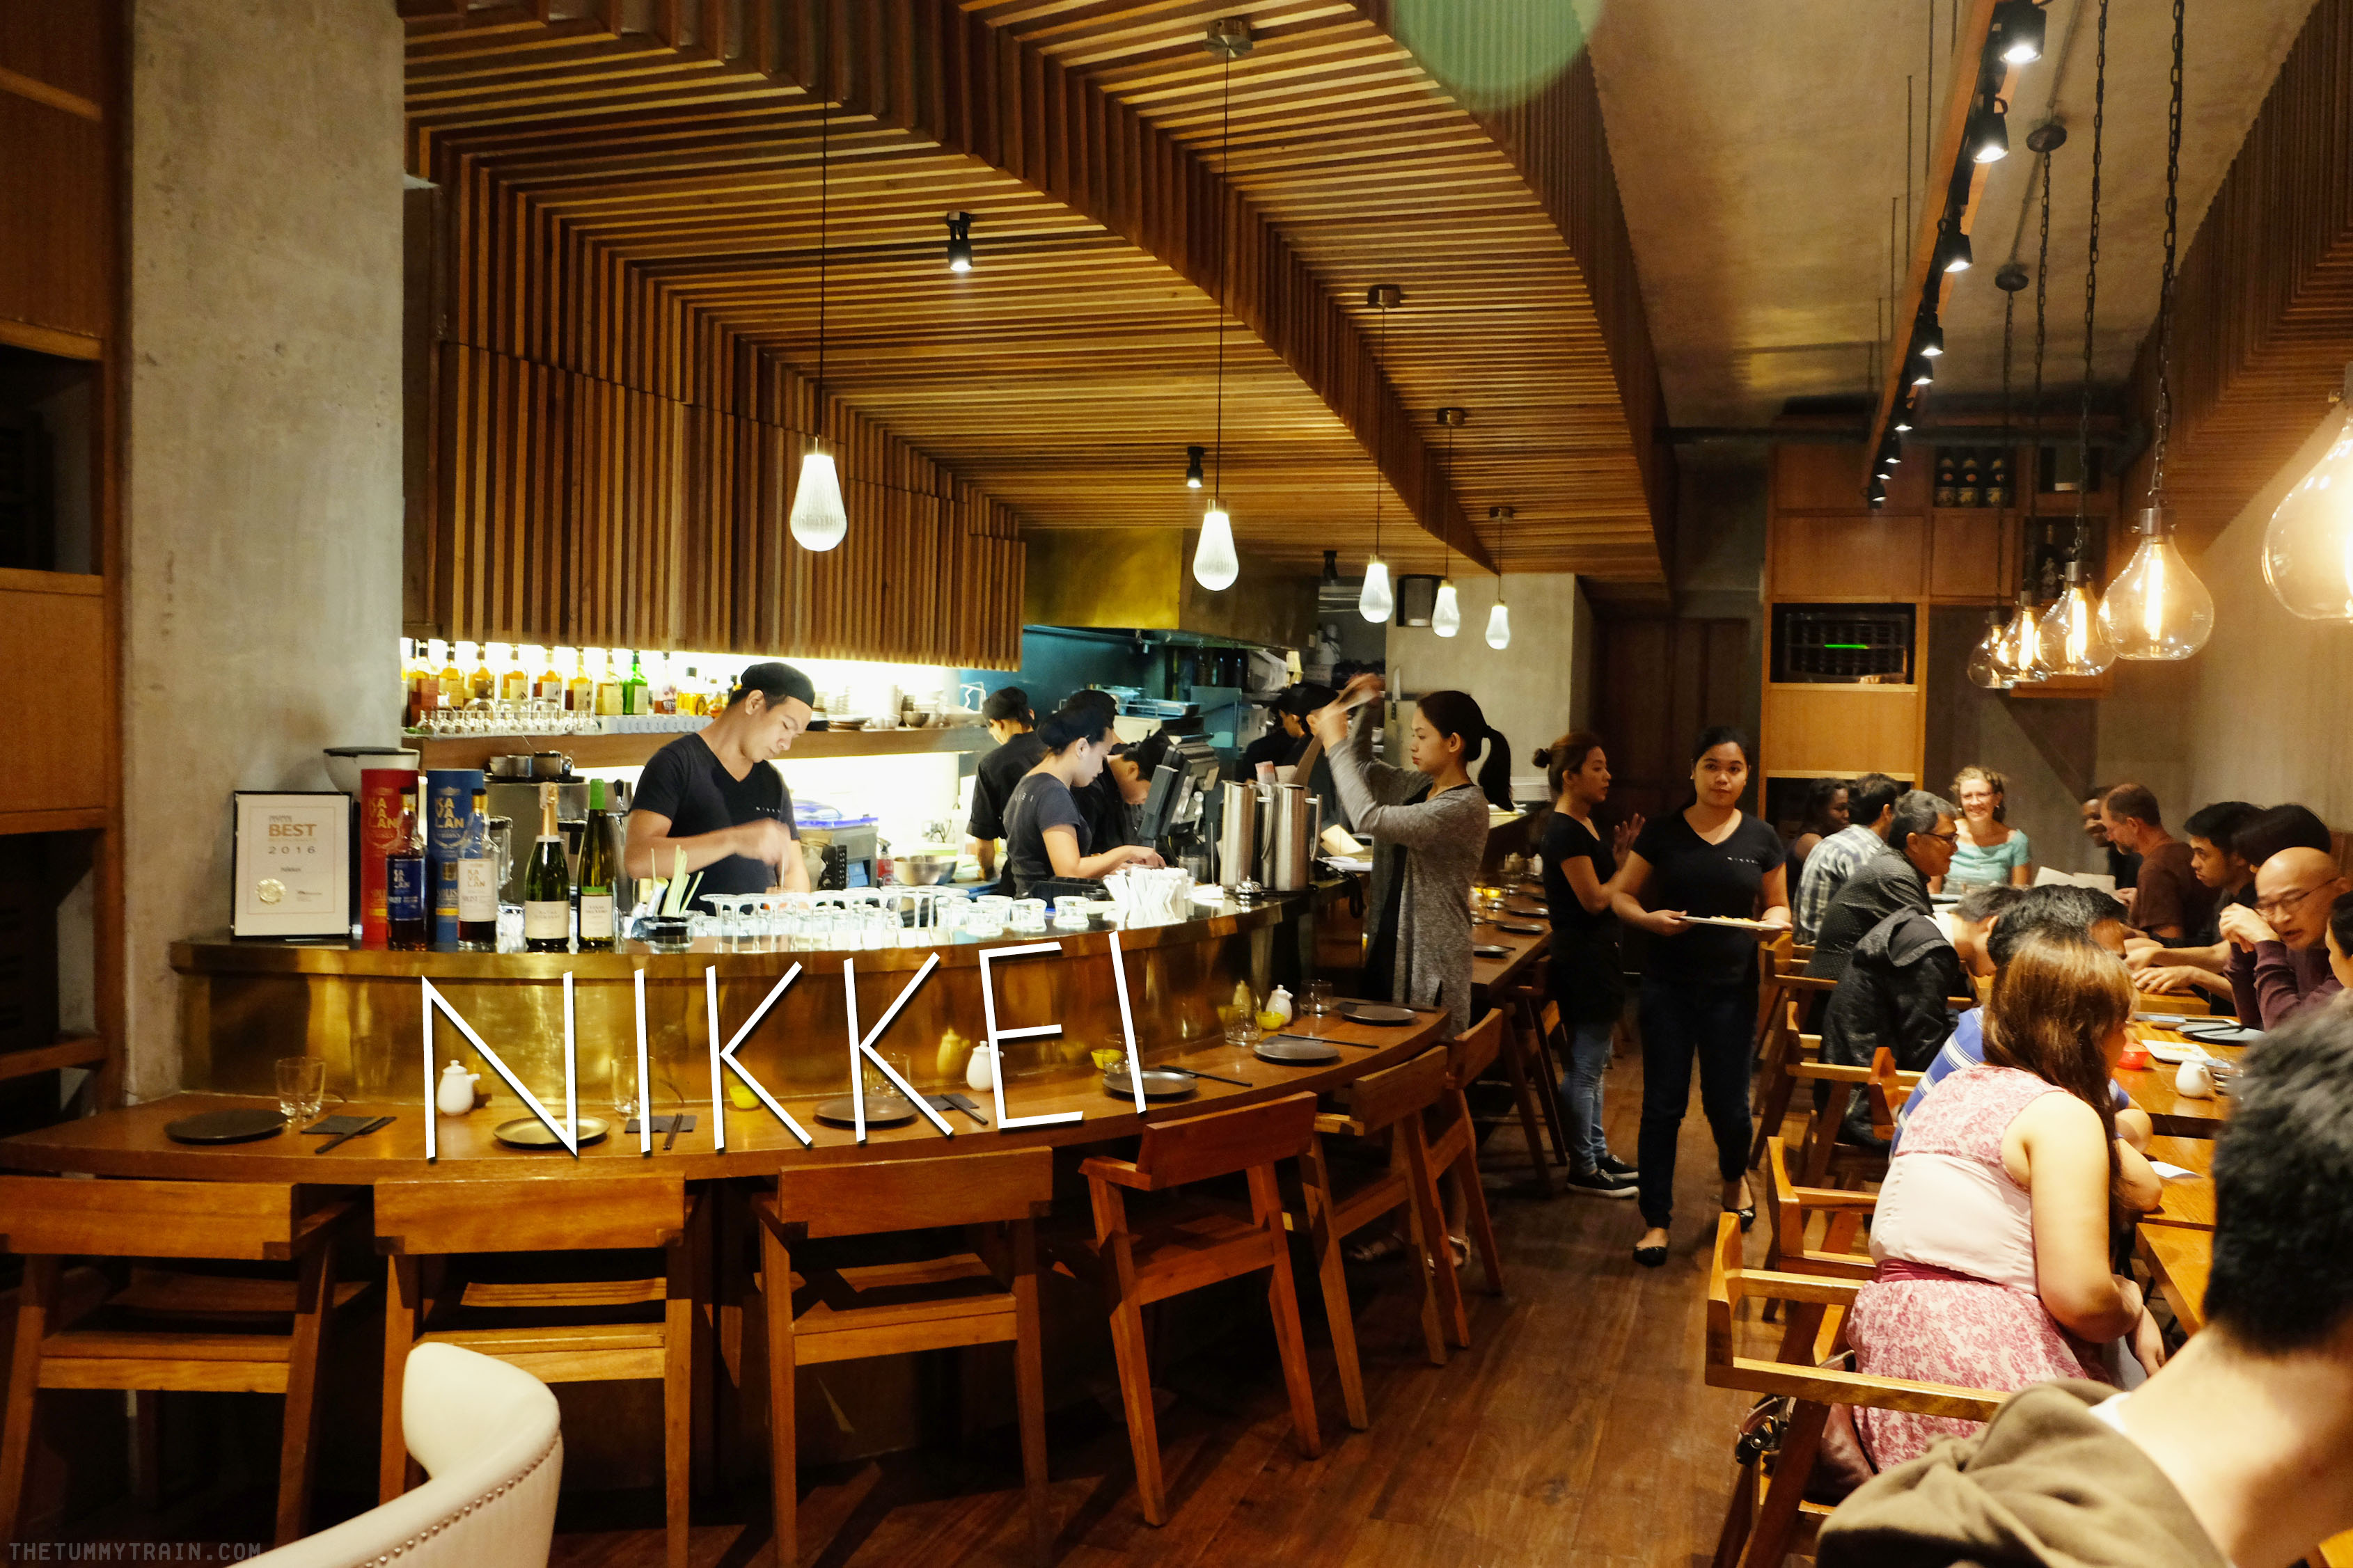 Nikkei featured image - Japanese meets Peruvian cuisine at trendy Nikkei in Legazpi Village